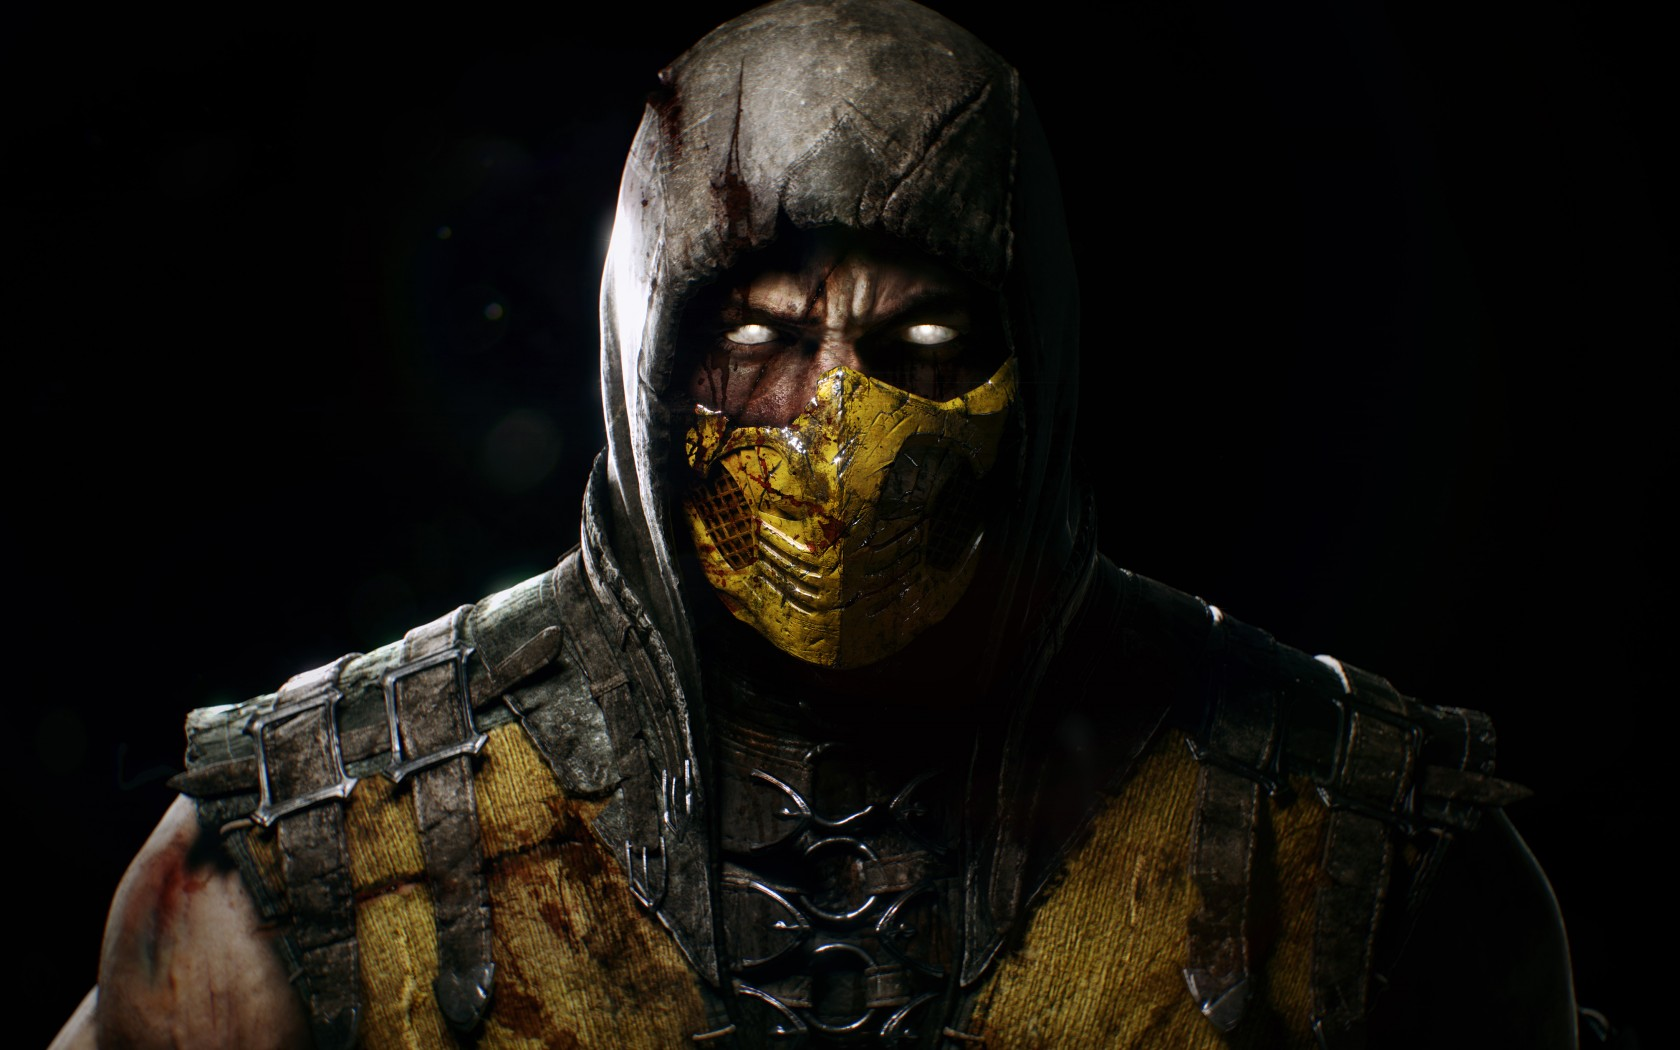 Mortal Kombat wallpaper Scorpion 18